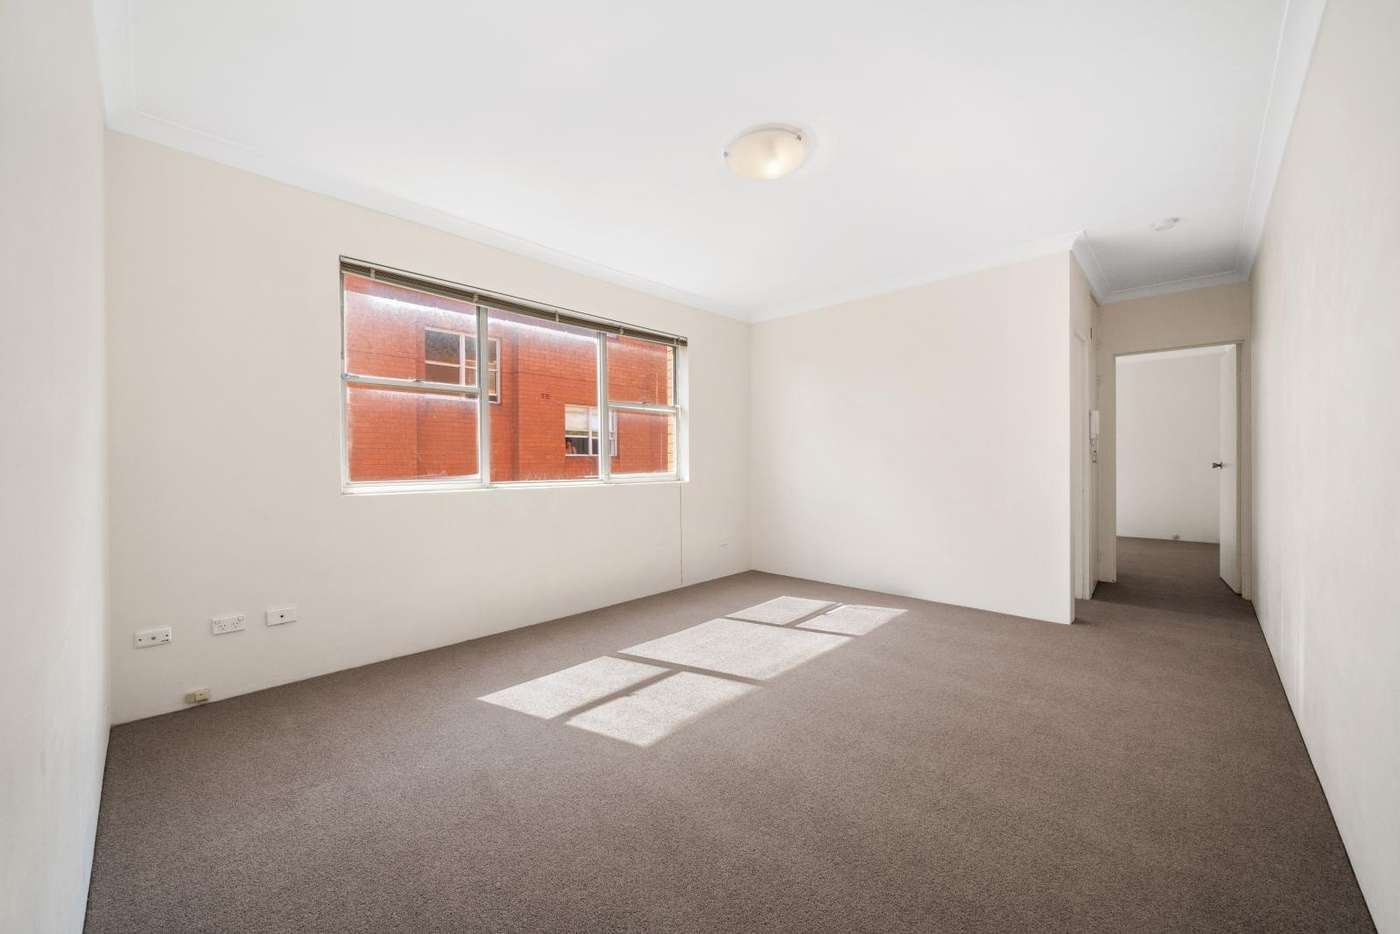 Main view of Homely apartment listing, 5/3 Astolat Street, Randwick NSW 2031